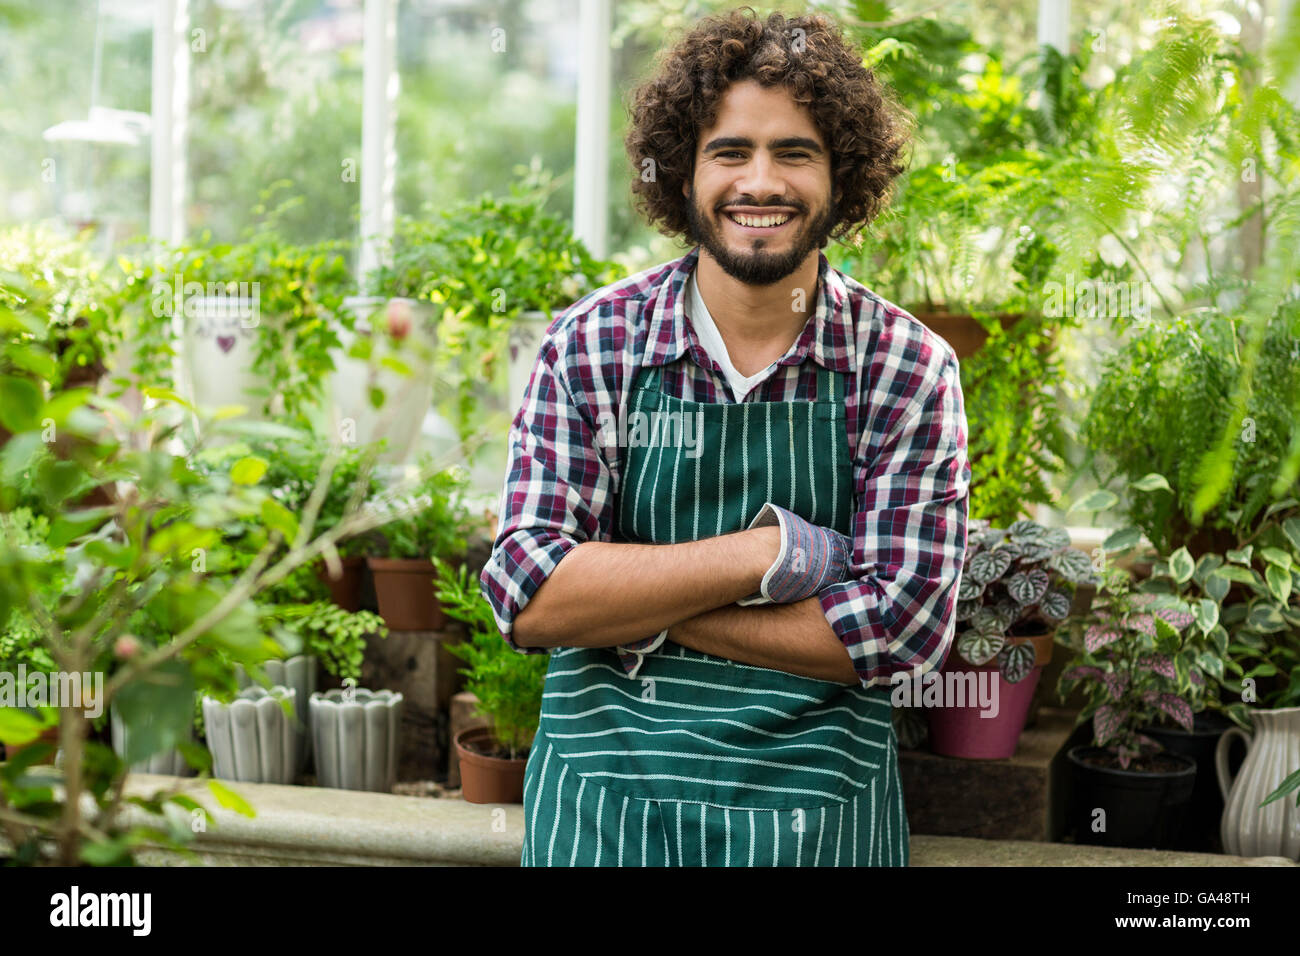 Male gardener with arms crossed at greenhouse - Stock Image